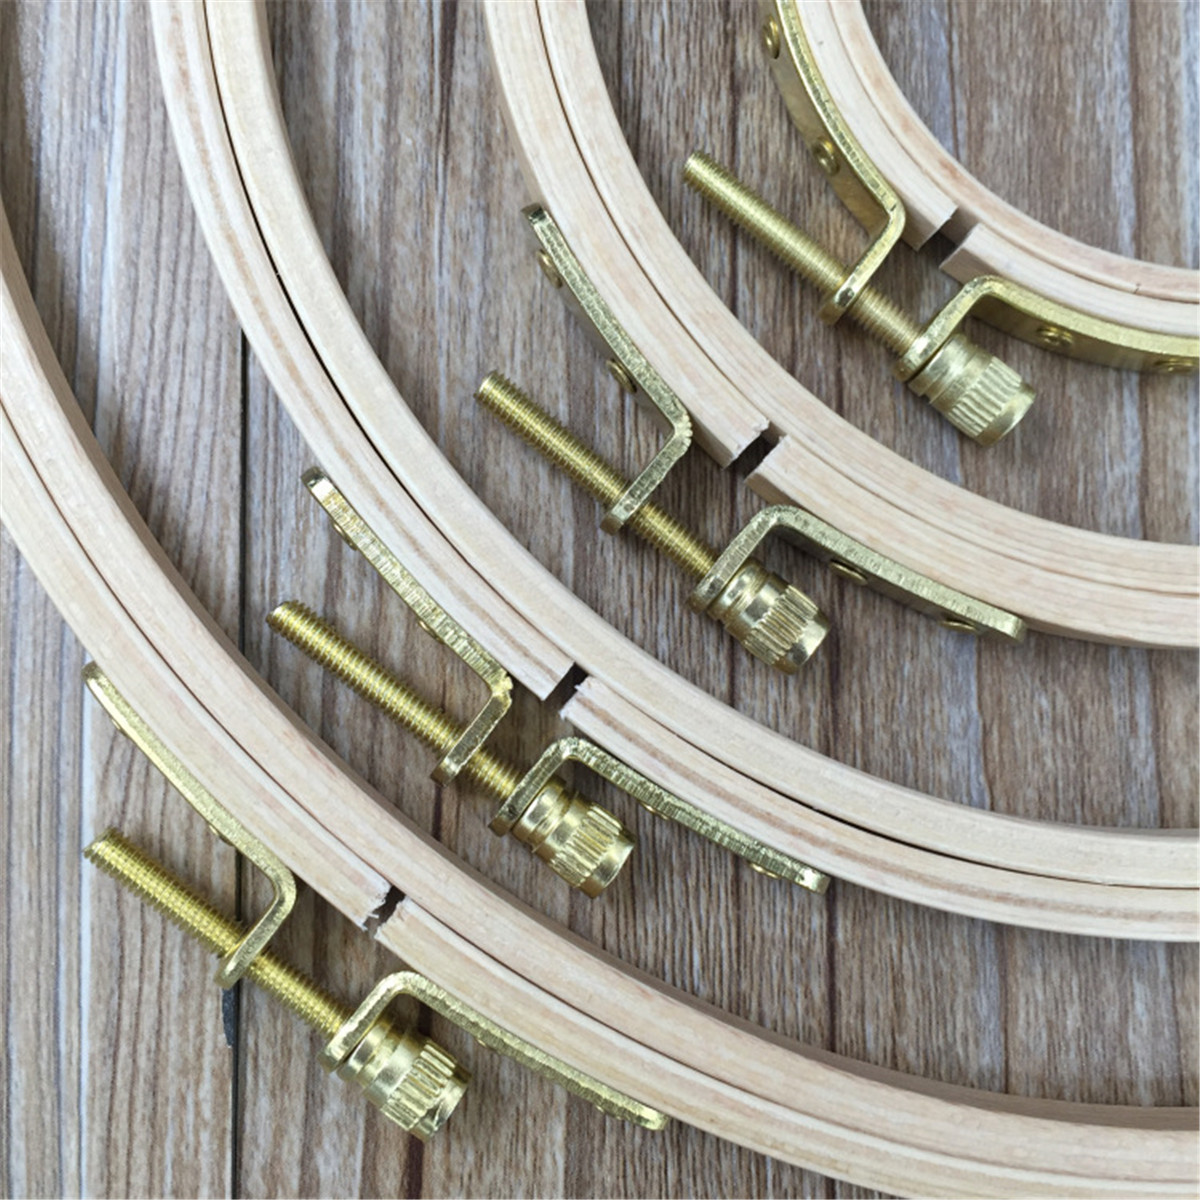 7 Size Wooden Embroidery Hoops Cross Stitch Sewing Tools Craft Ring Frame Machine Tool